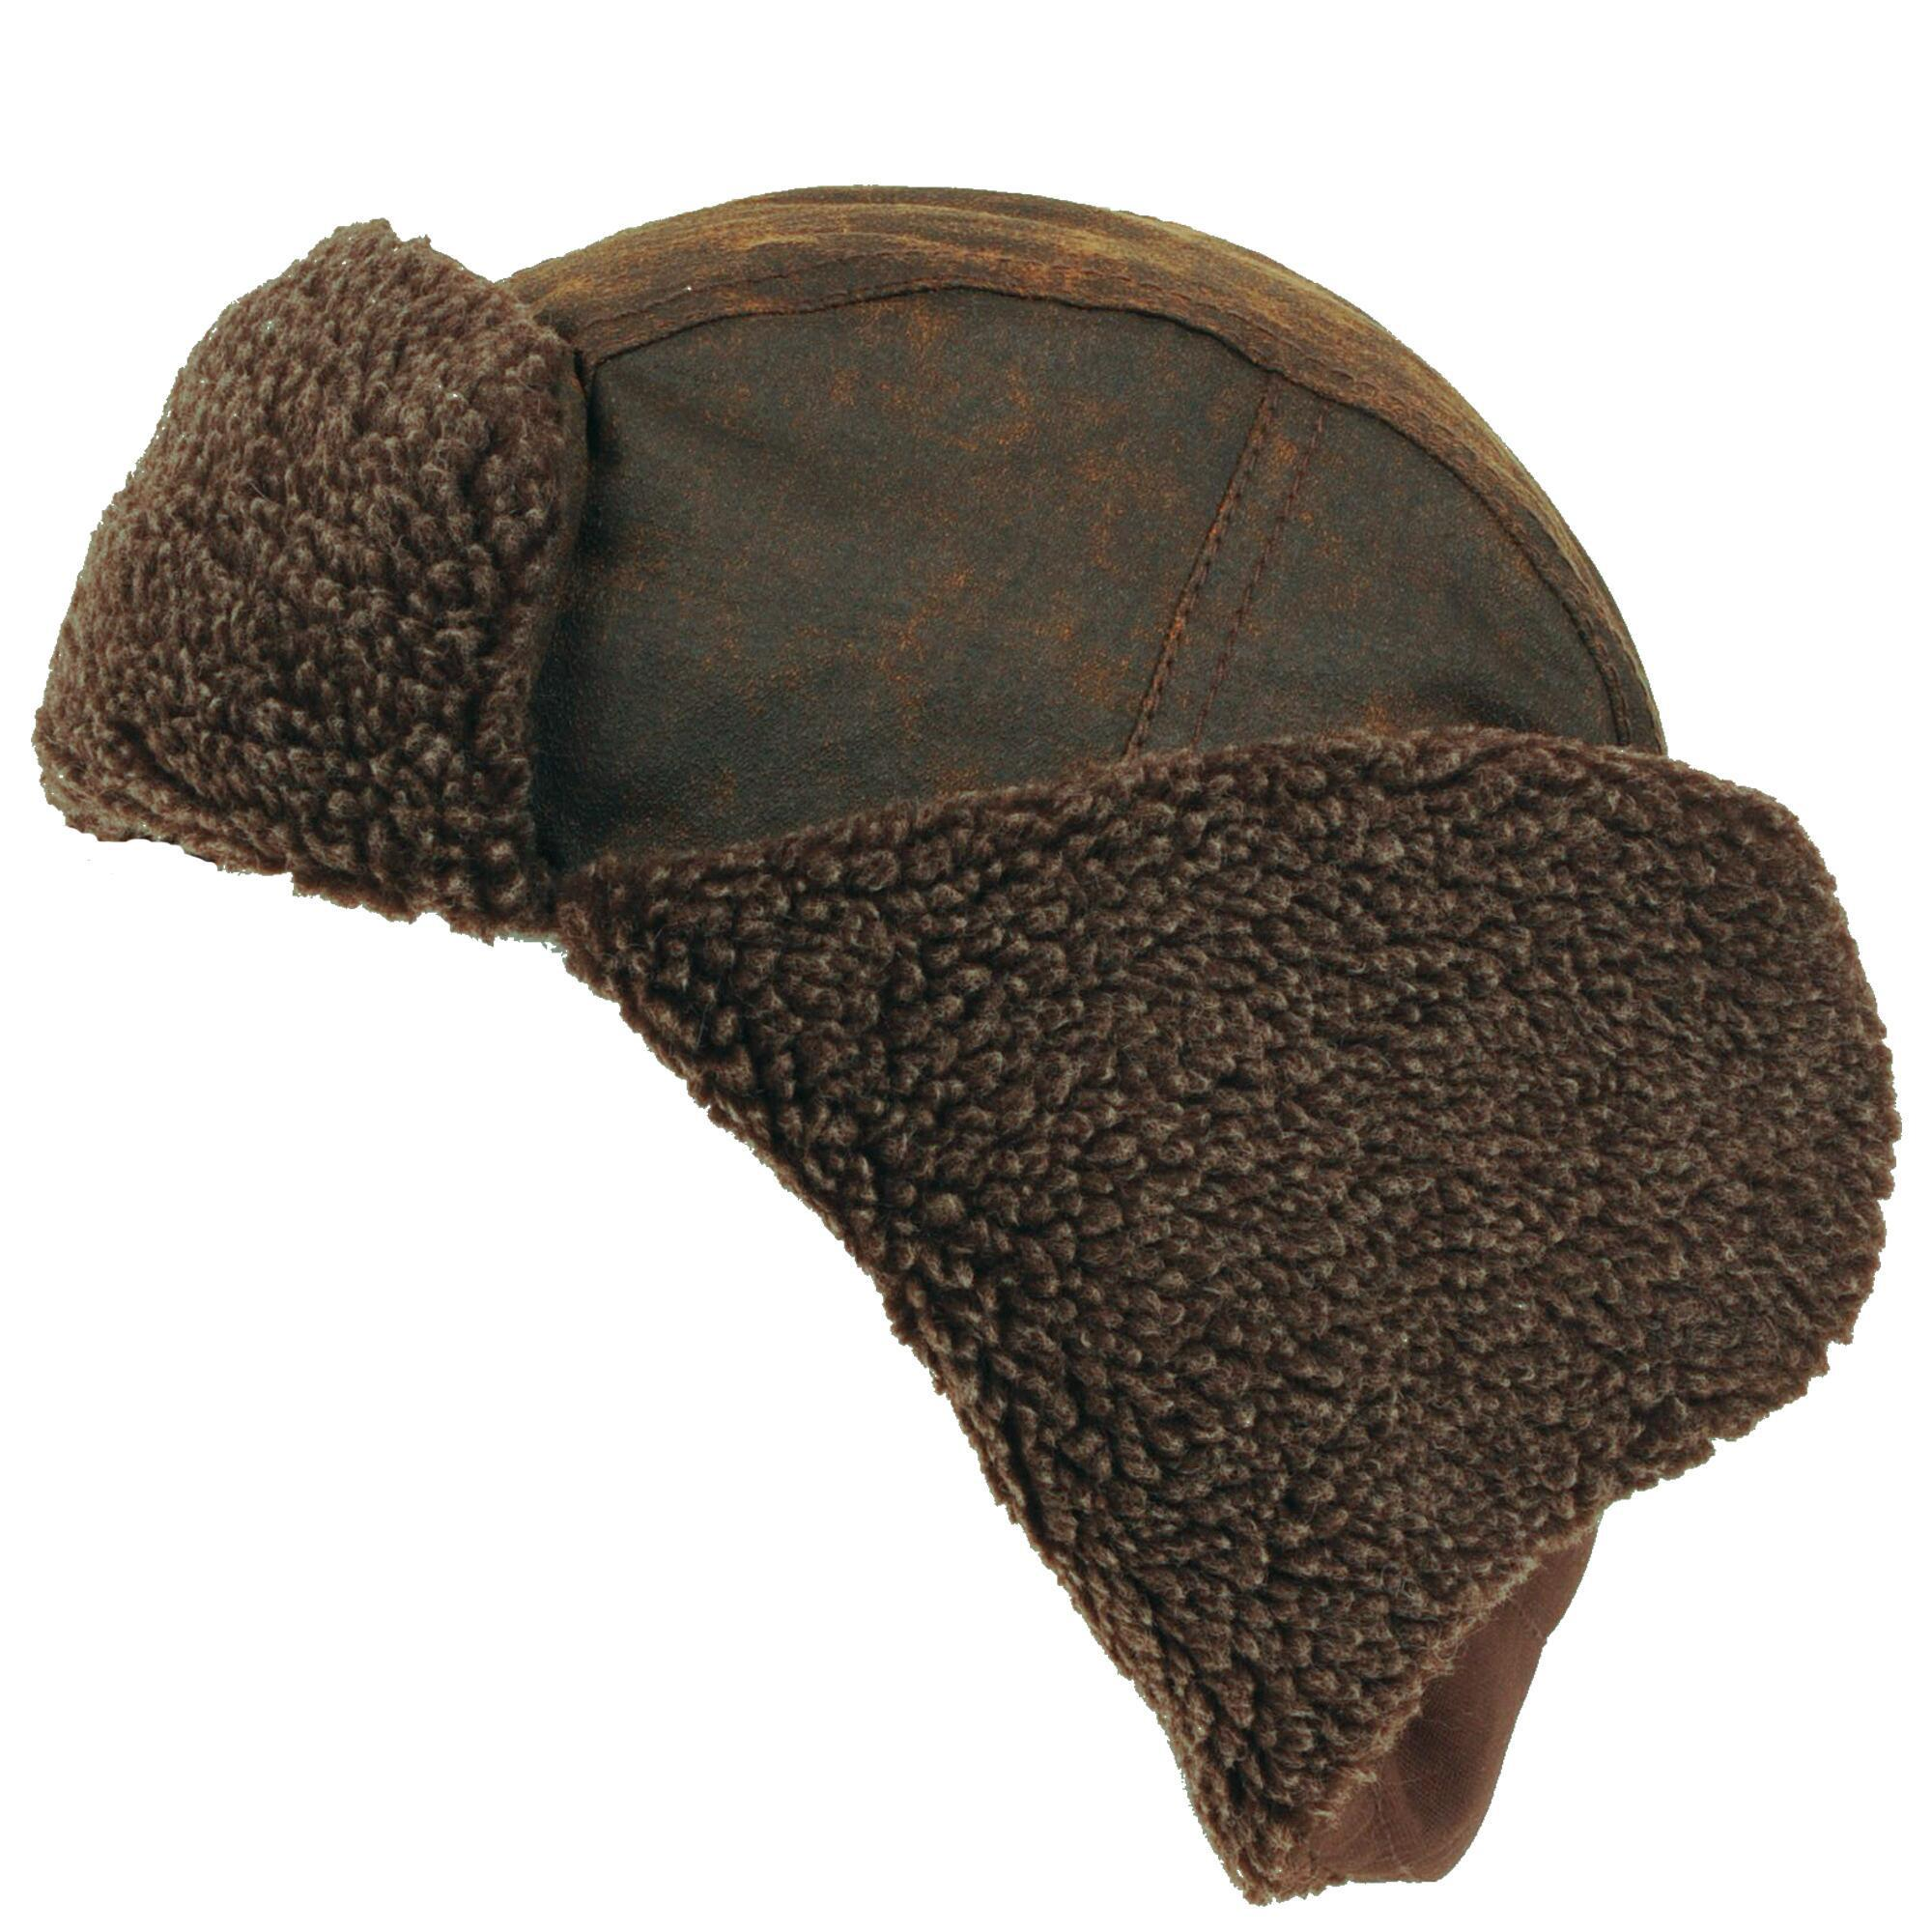 eff58537ff5ff Wilsons Leather - Brown Washed Canvas Trapper Hat W  Faux-sherpa for Men -.  View fullscreen